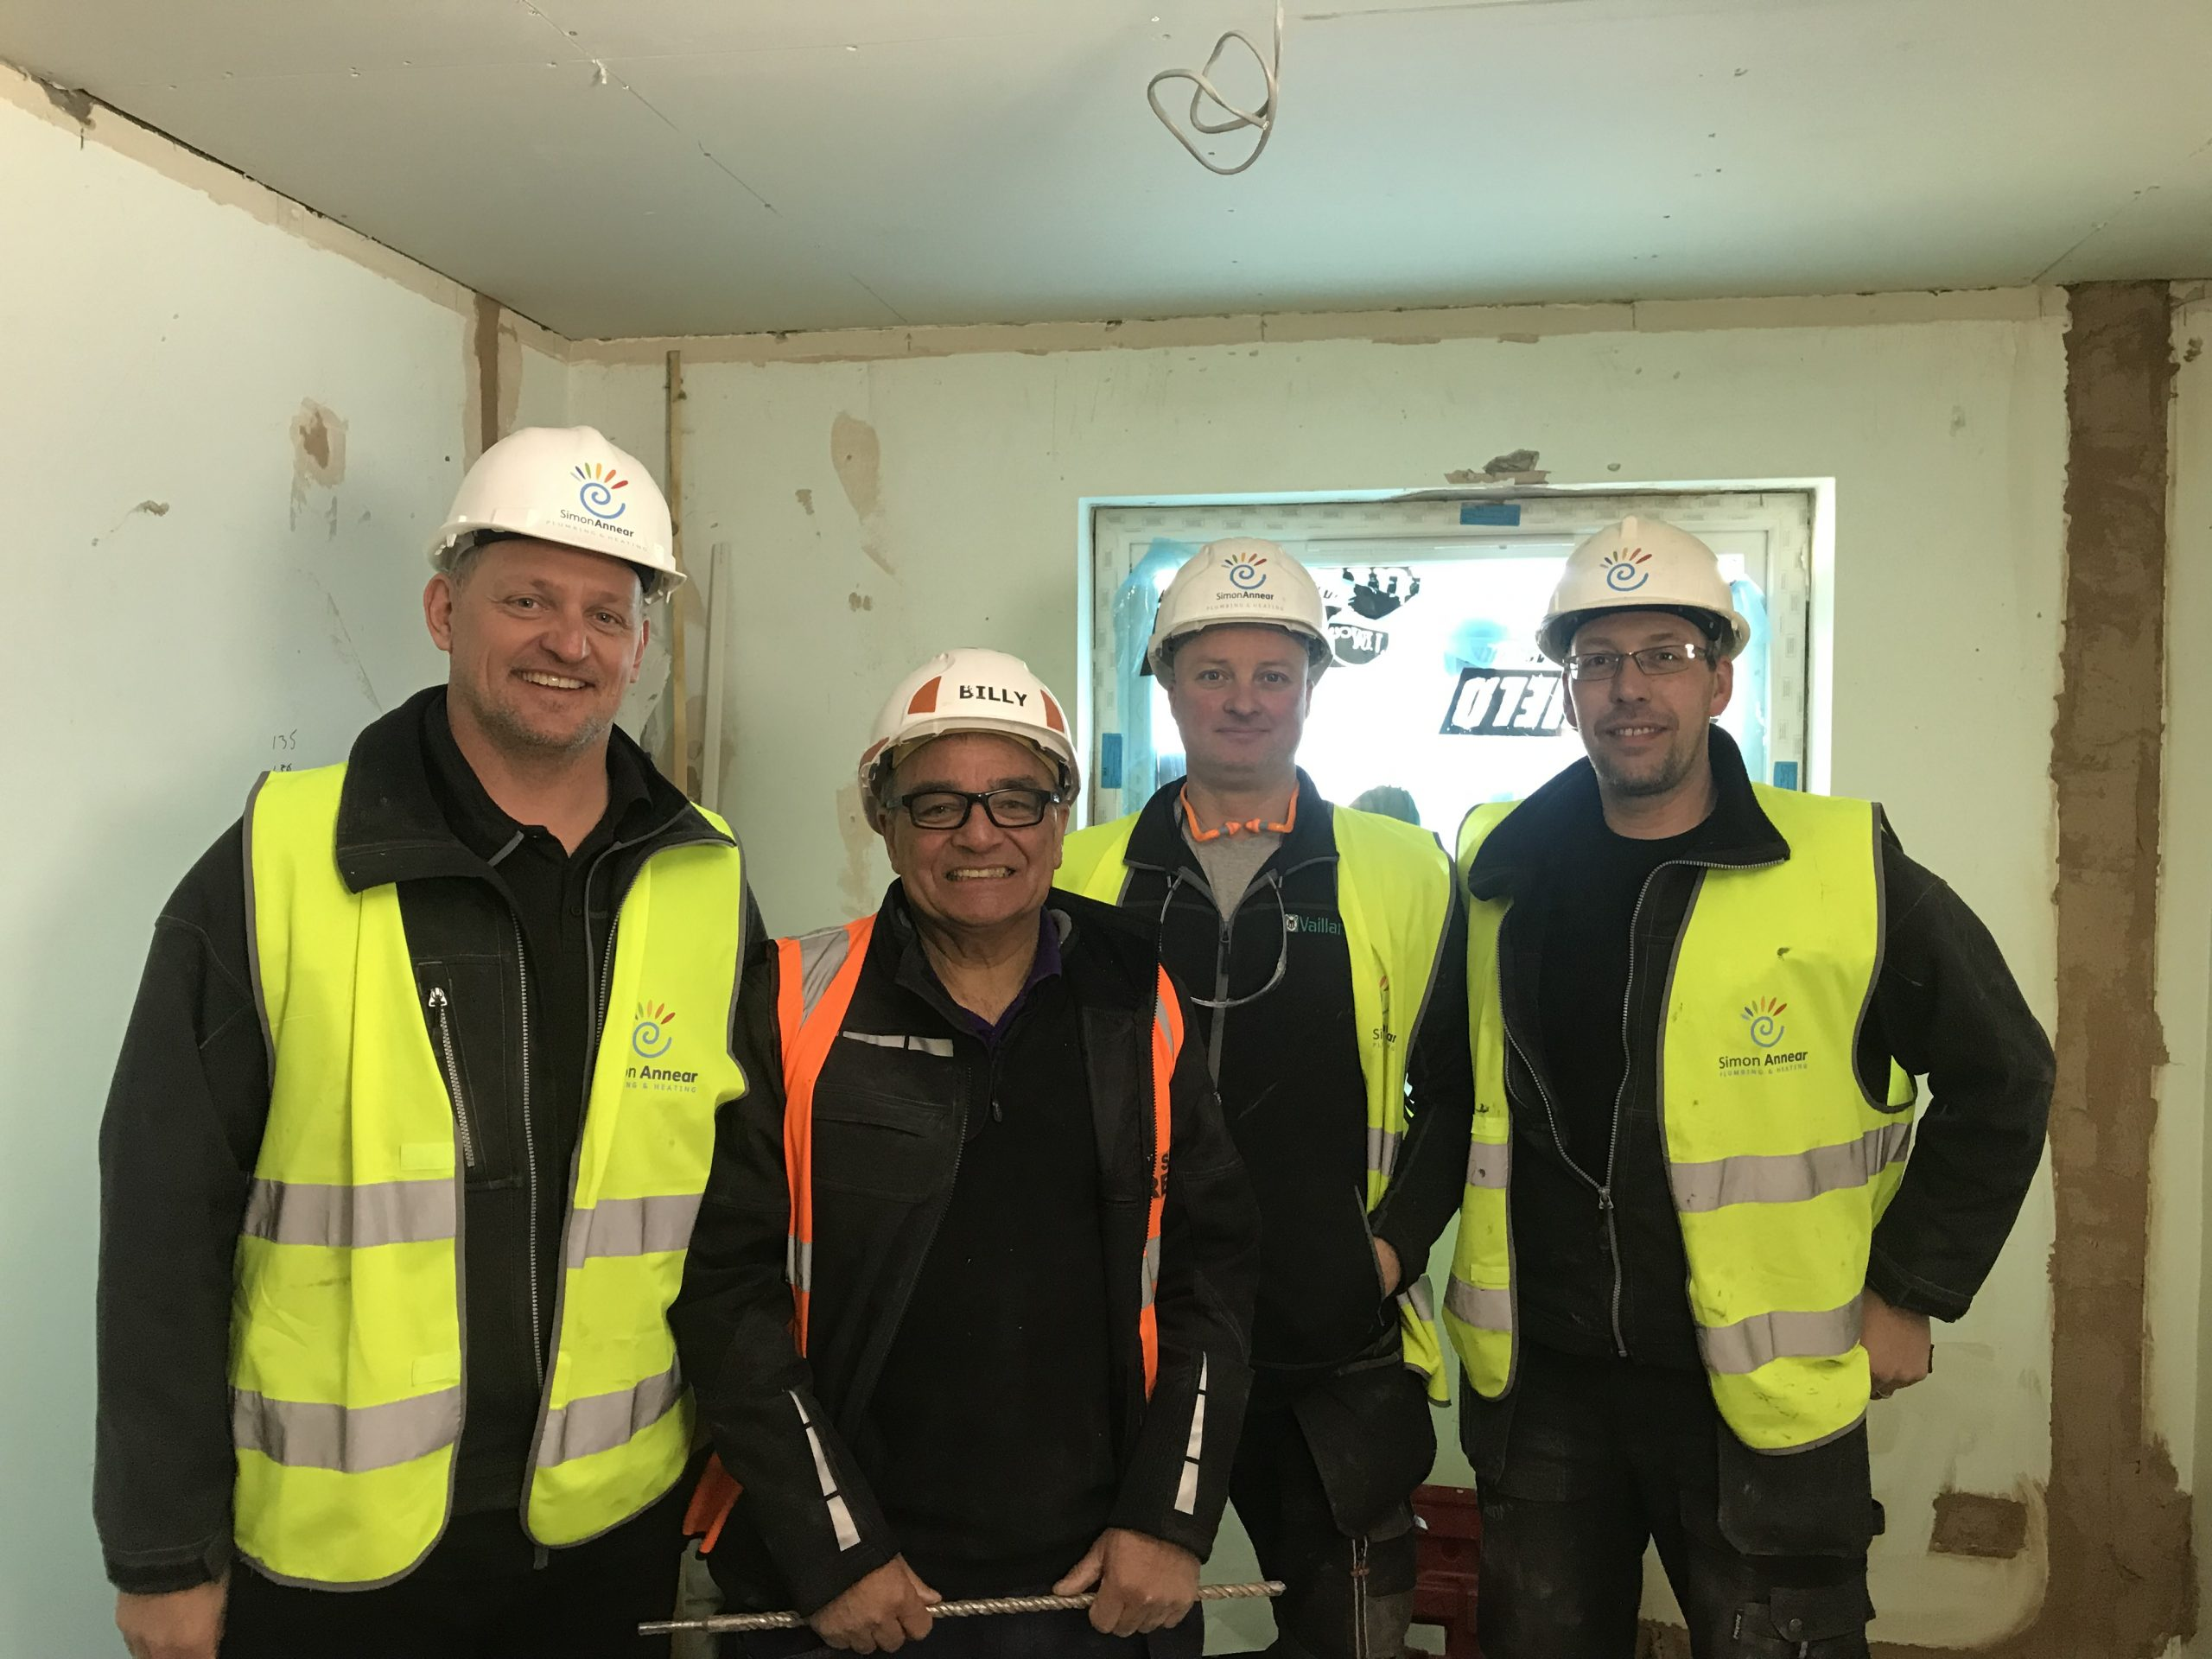 The Simon Annear Plumbing, Heating and Electrical team of installers in Cornwall